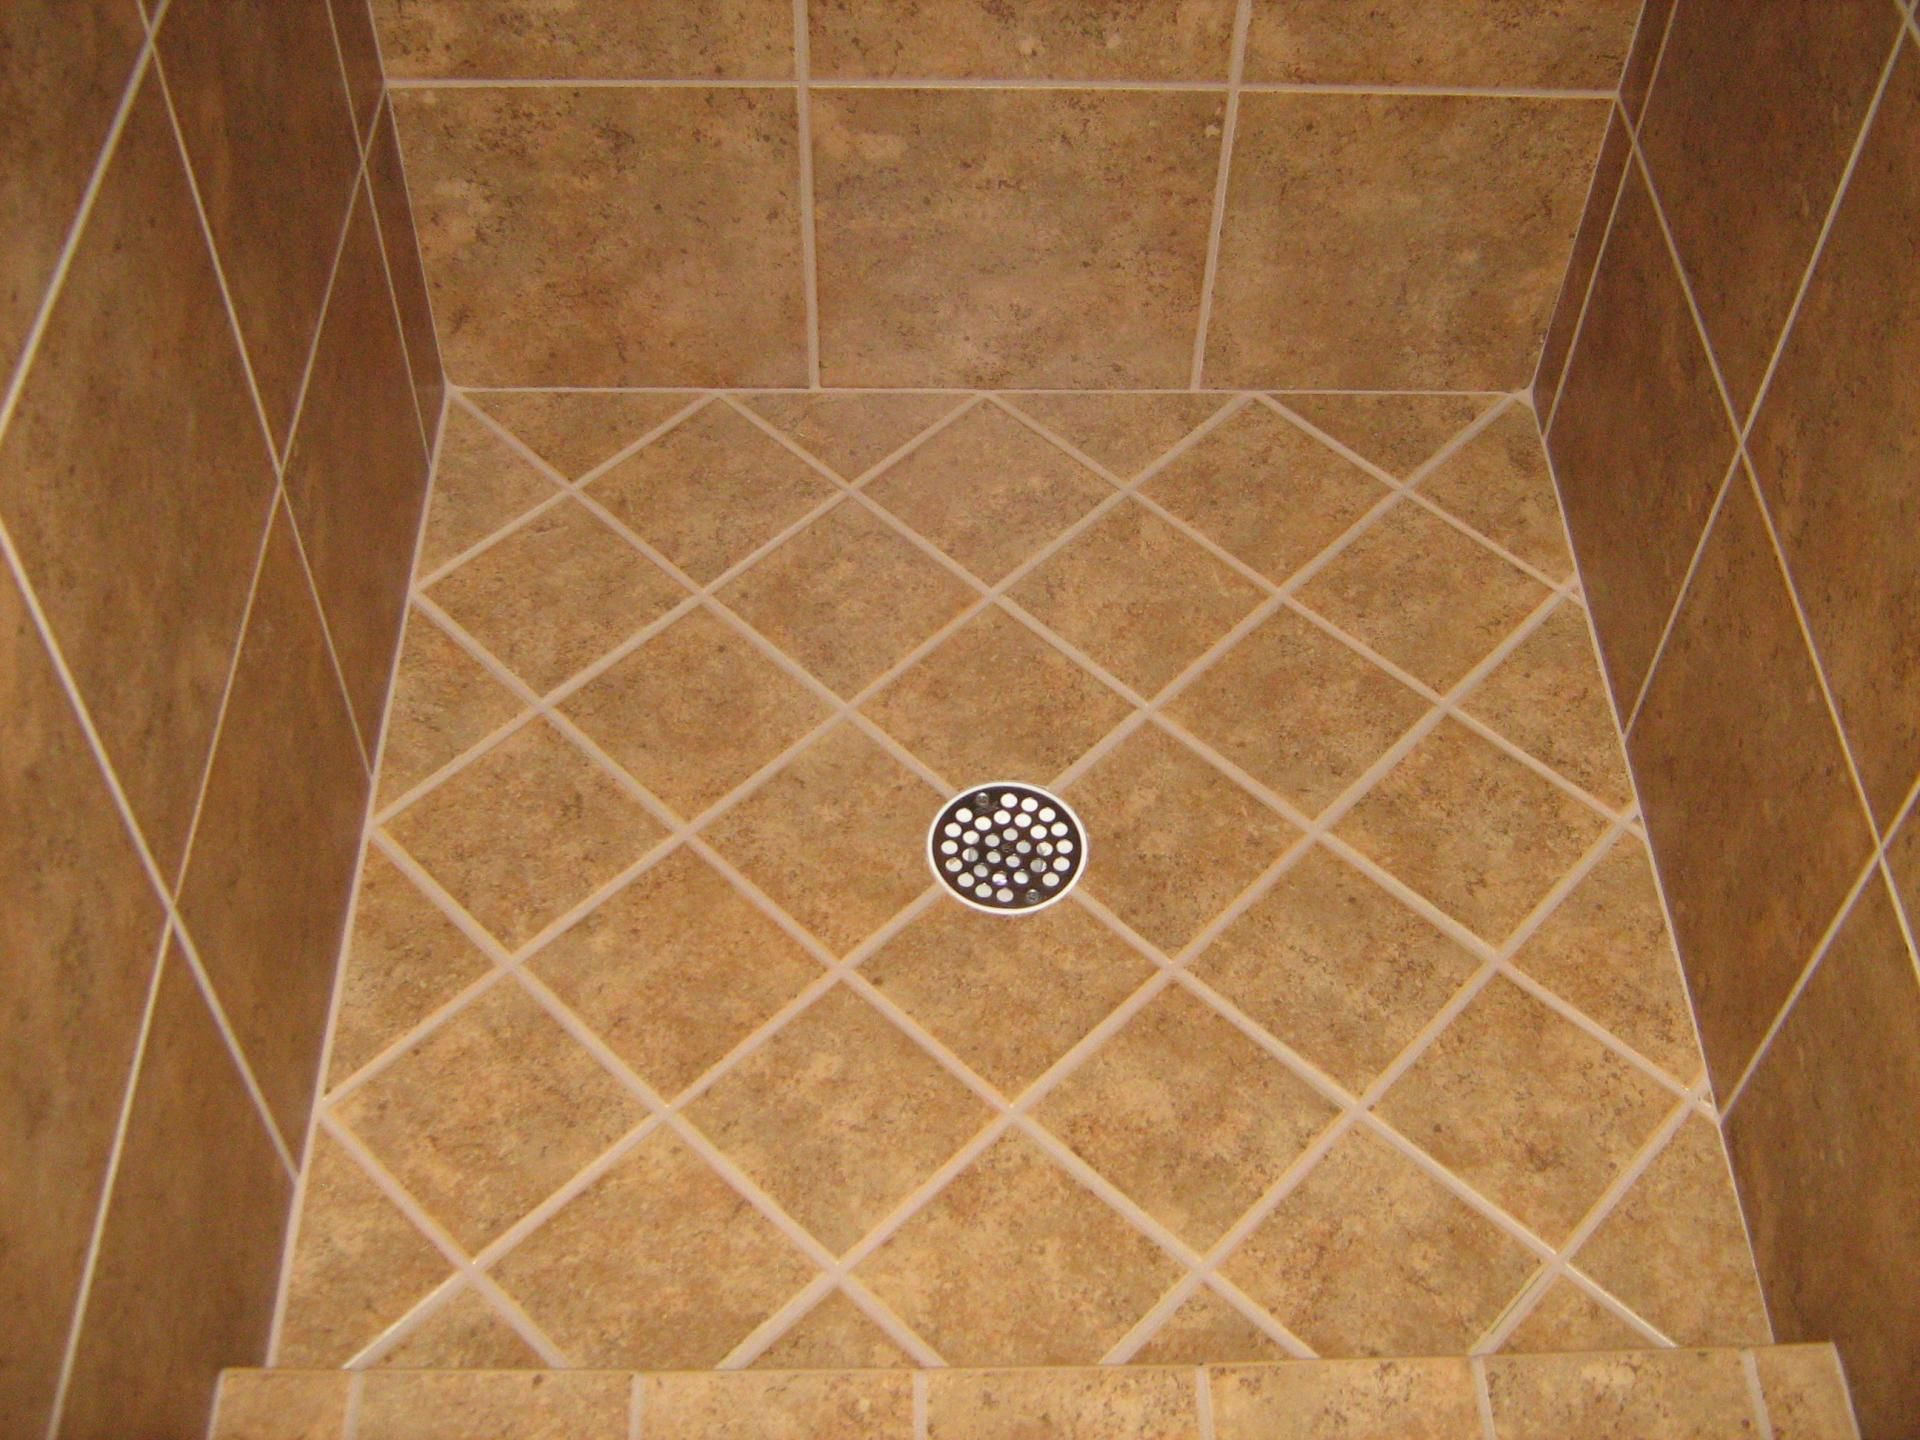 Floor Shower Floor Tile For A Shower With A Square Shape At